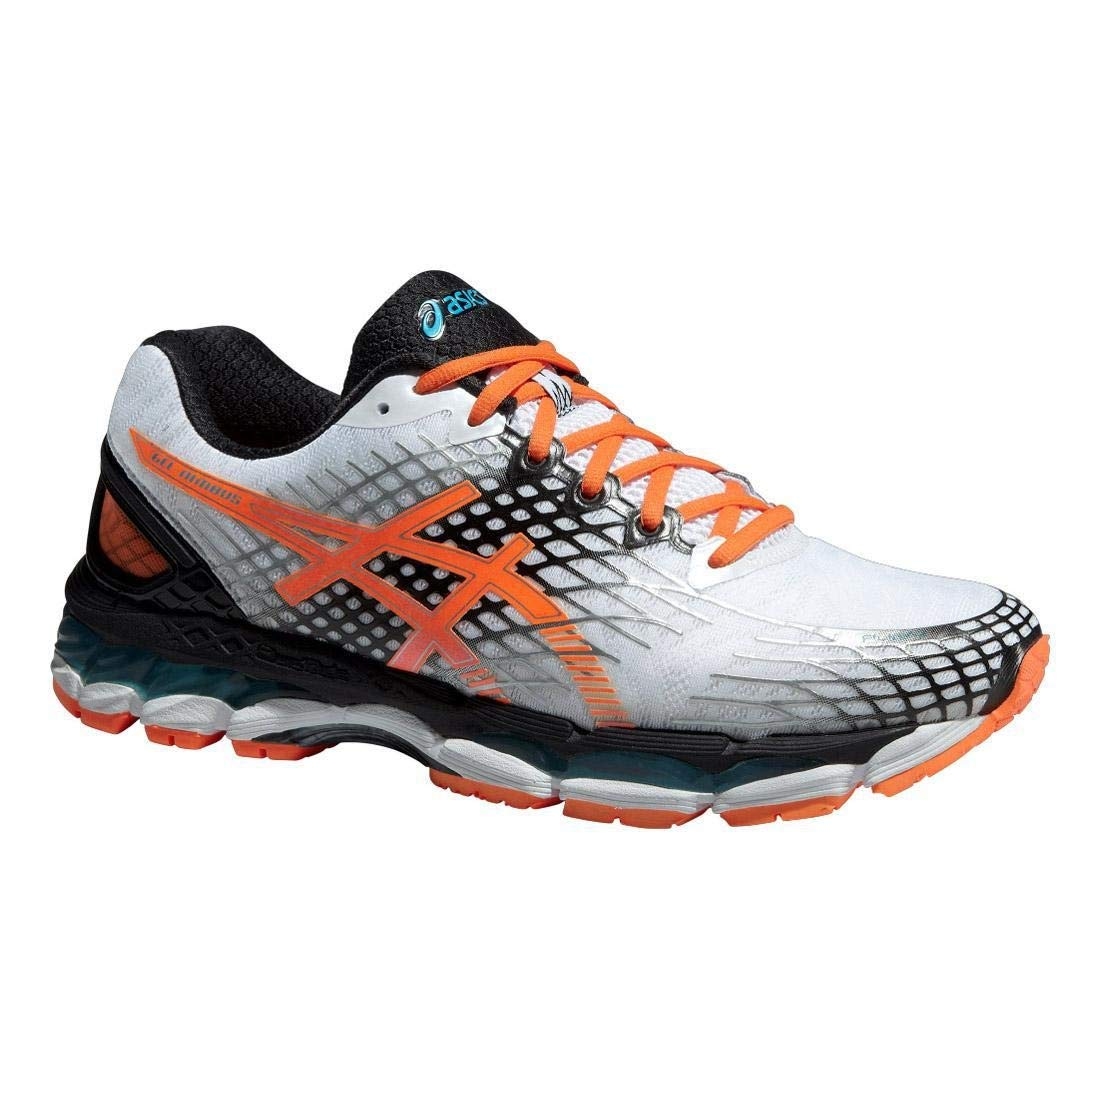 differently d2b86 be09e ASICS Gel-Nimbus 17 Men's Running Shoes White Flash Orange ...